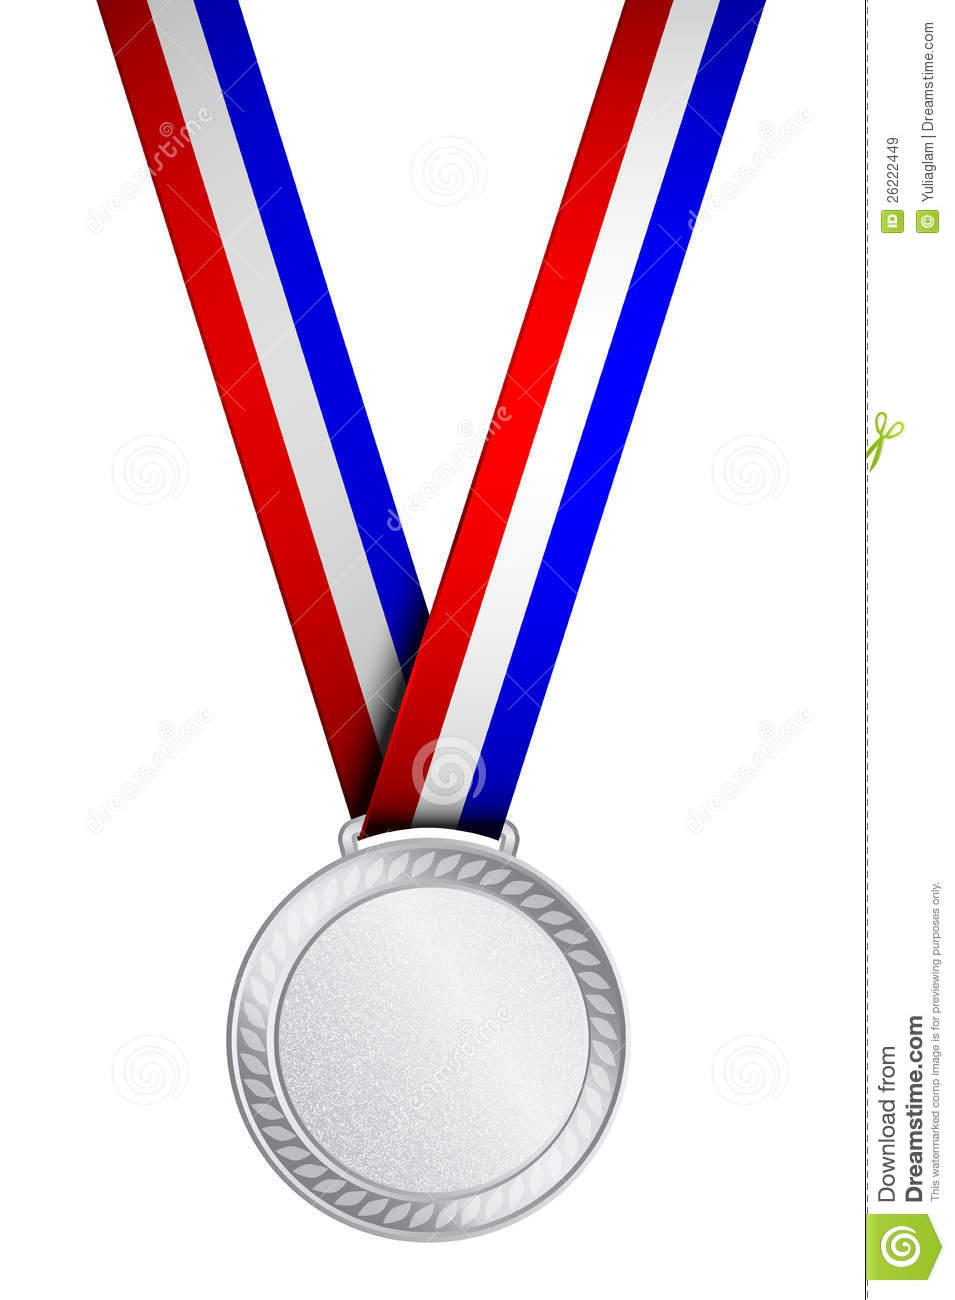 Medal pictures clip art.